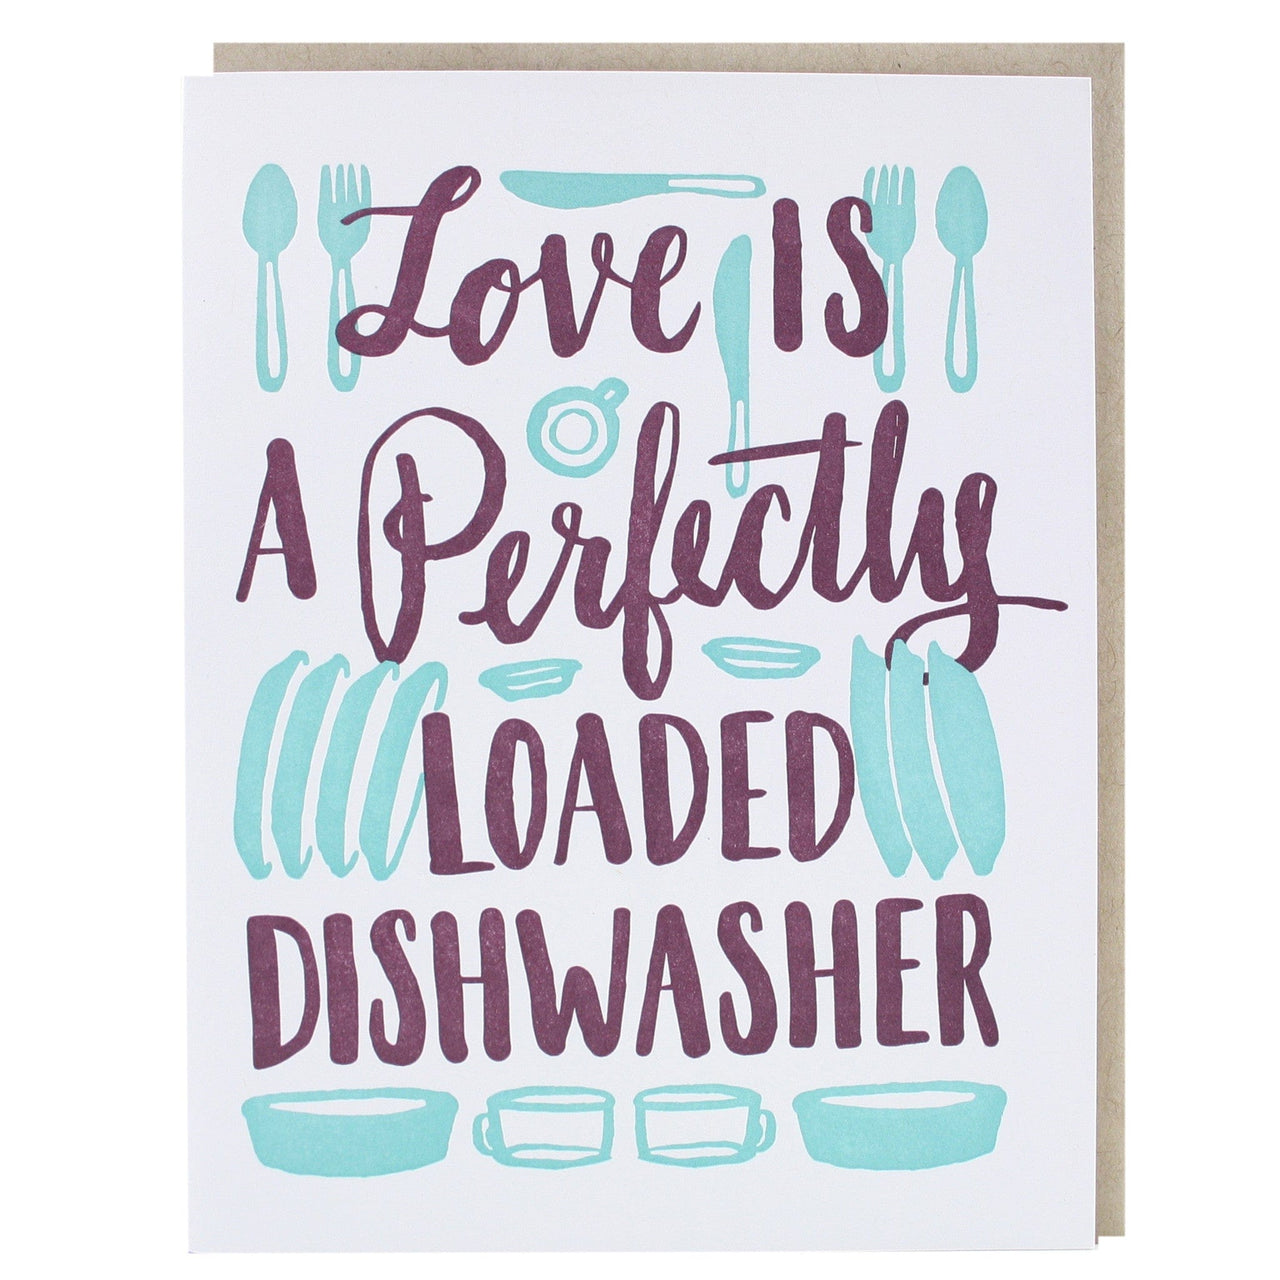 Dishwasher Love Card